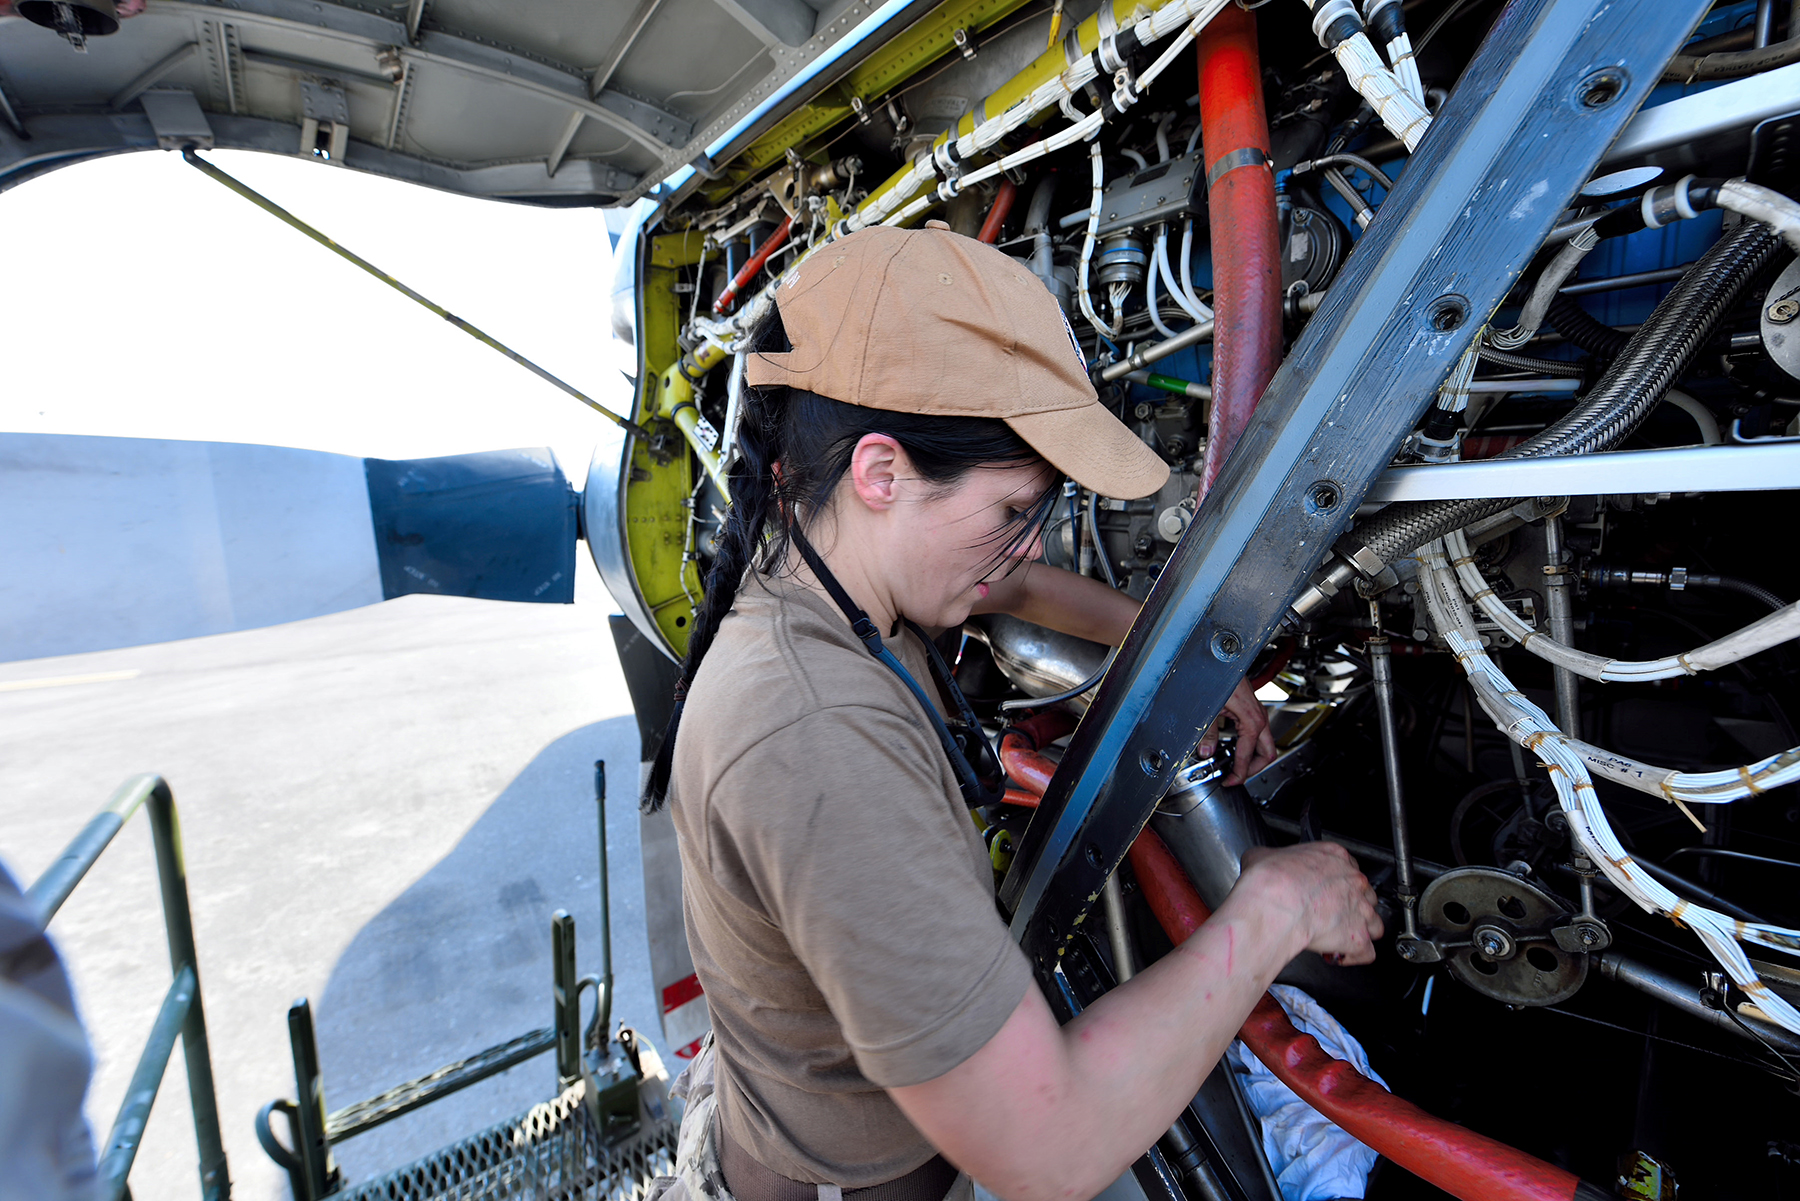 An aviation technician performs general maintenance on a CP-140 Aurora engine in Kuwait on April 4, 2016, during Operation Impact. PHOTO: Op Impact, DND, KW03-2016-0077-001